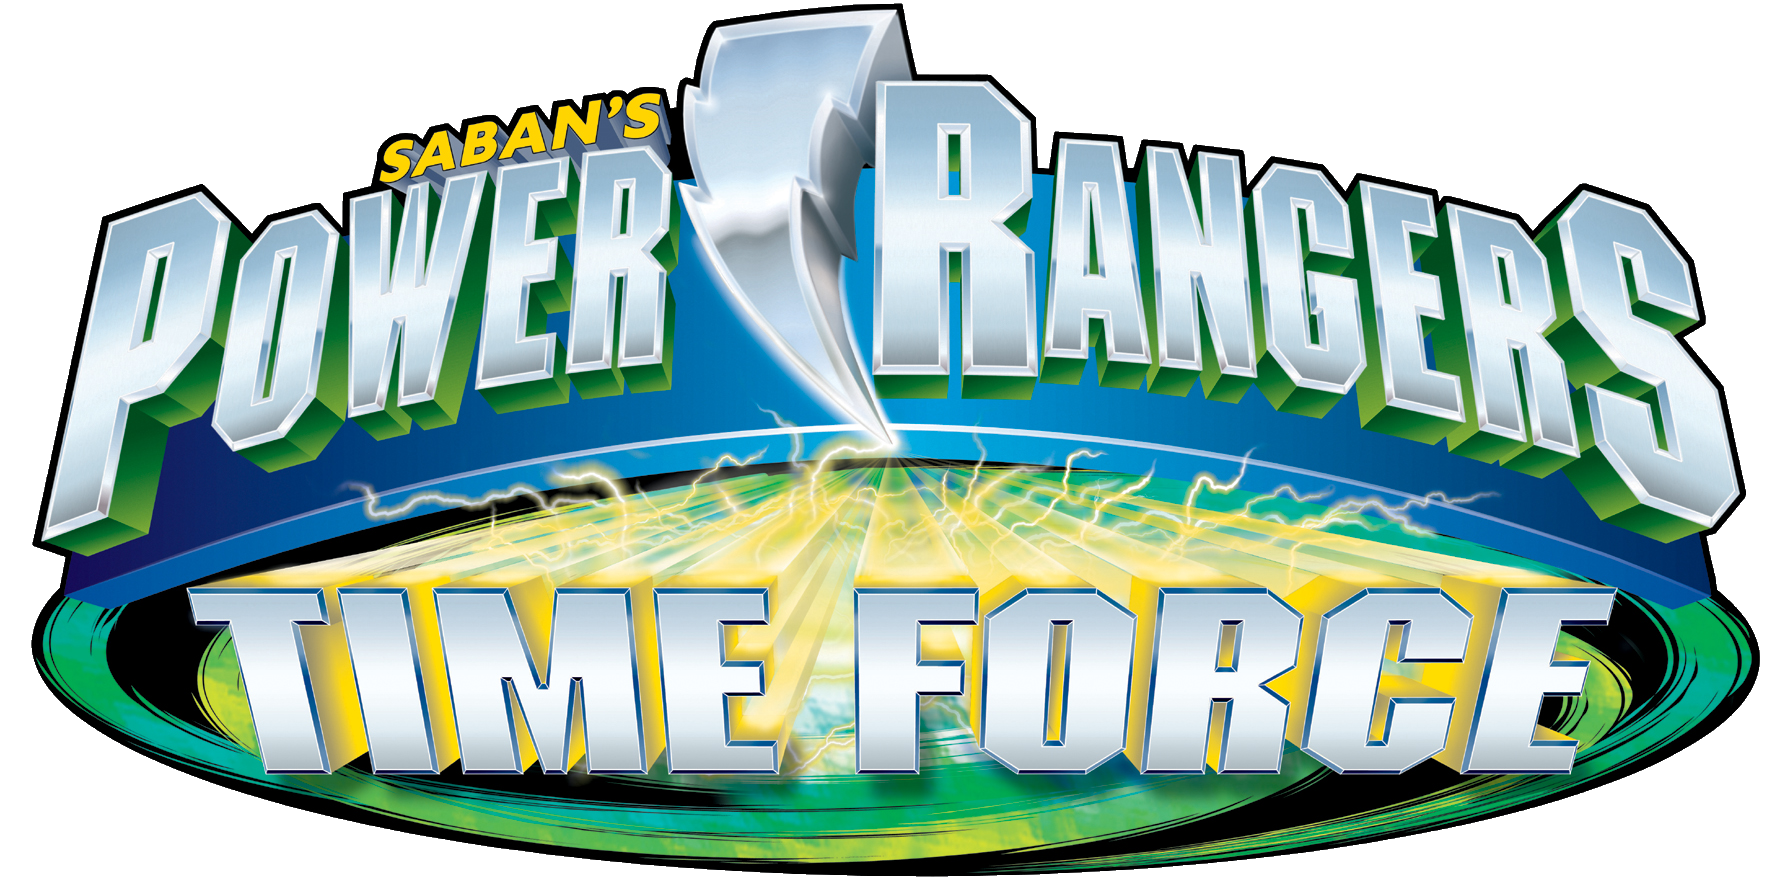 Galaxy clipart space logo. Image power rangers time